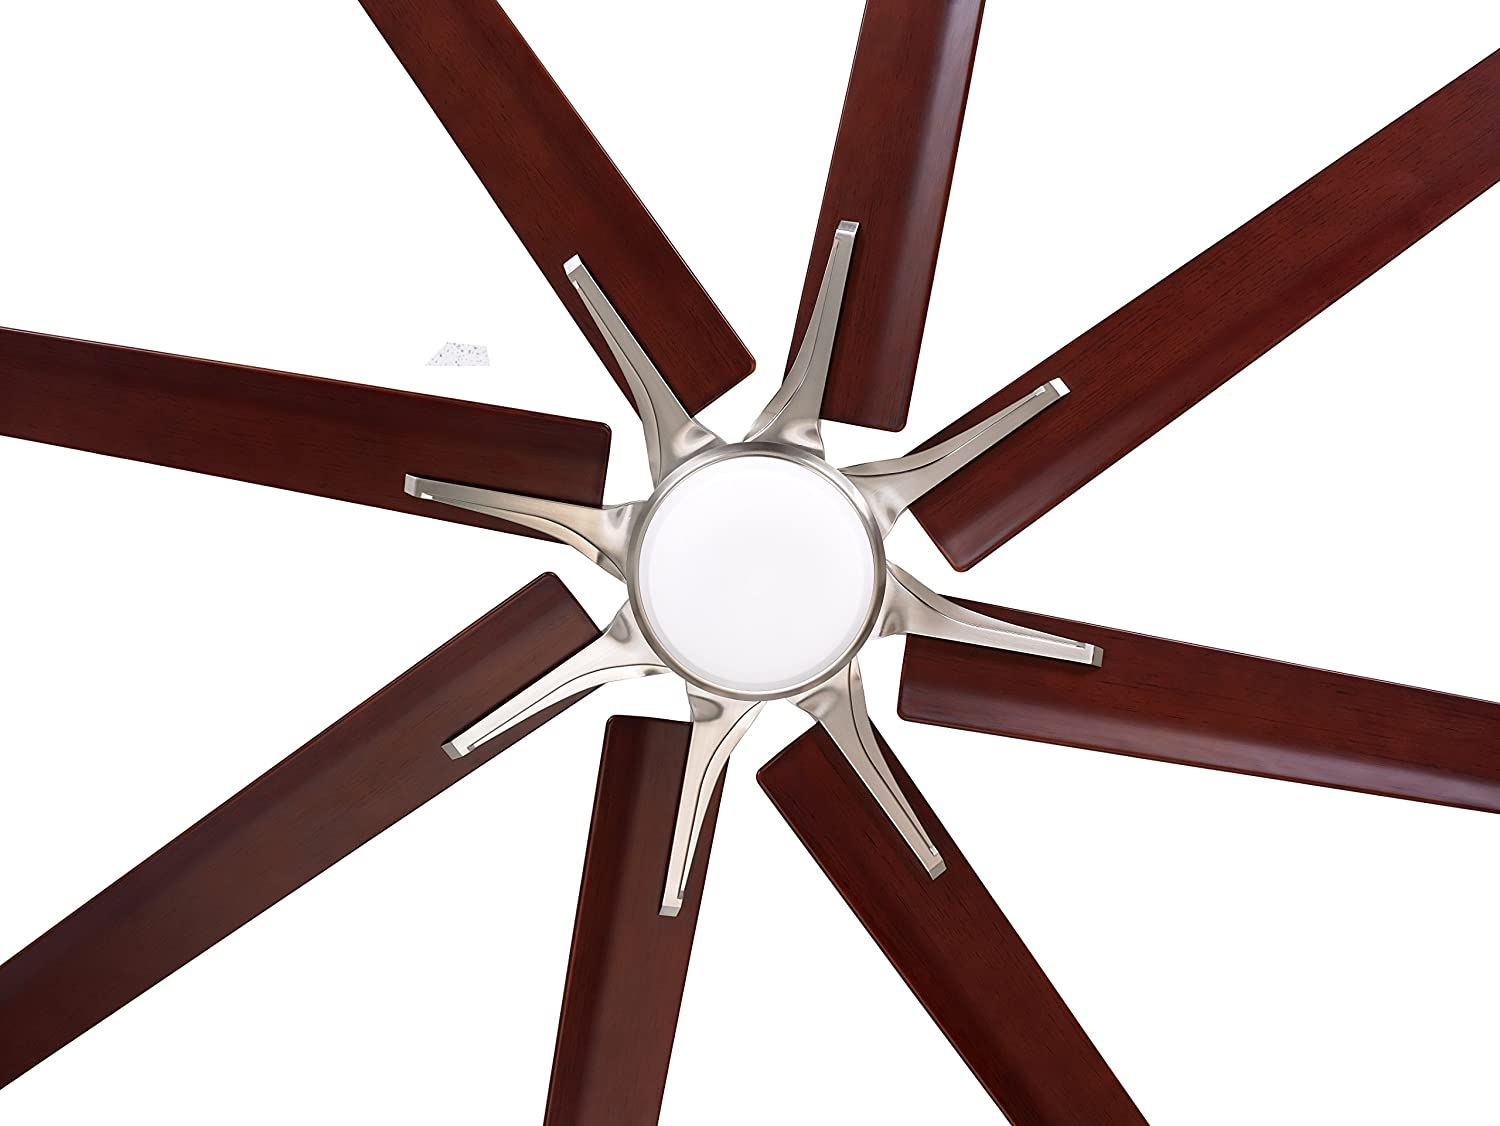 oil bronze ceiling traditional fans walnut dark lights w rubbed finish with fan inch blades in